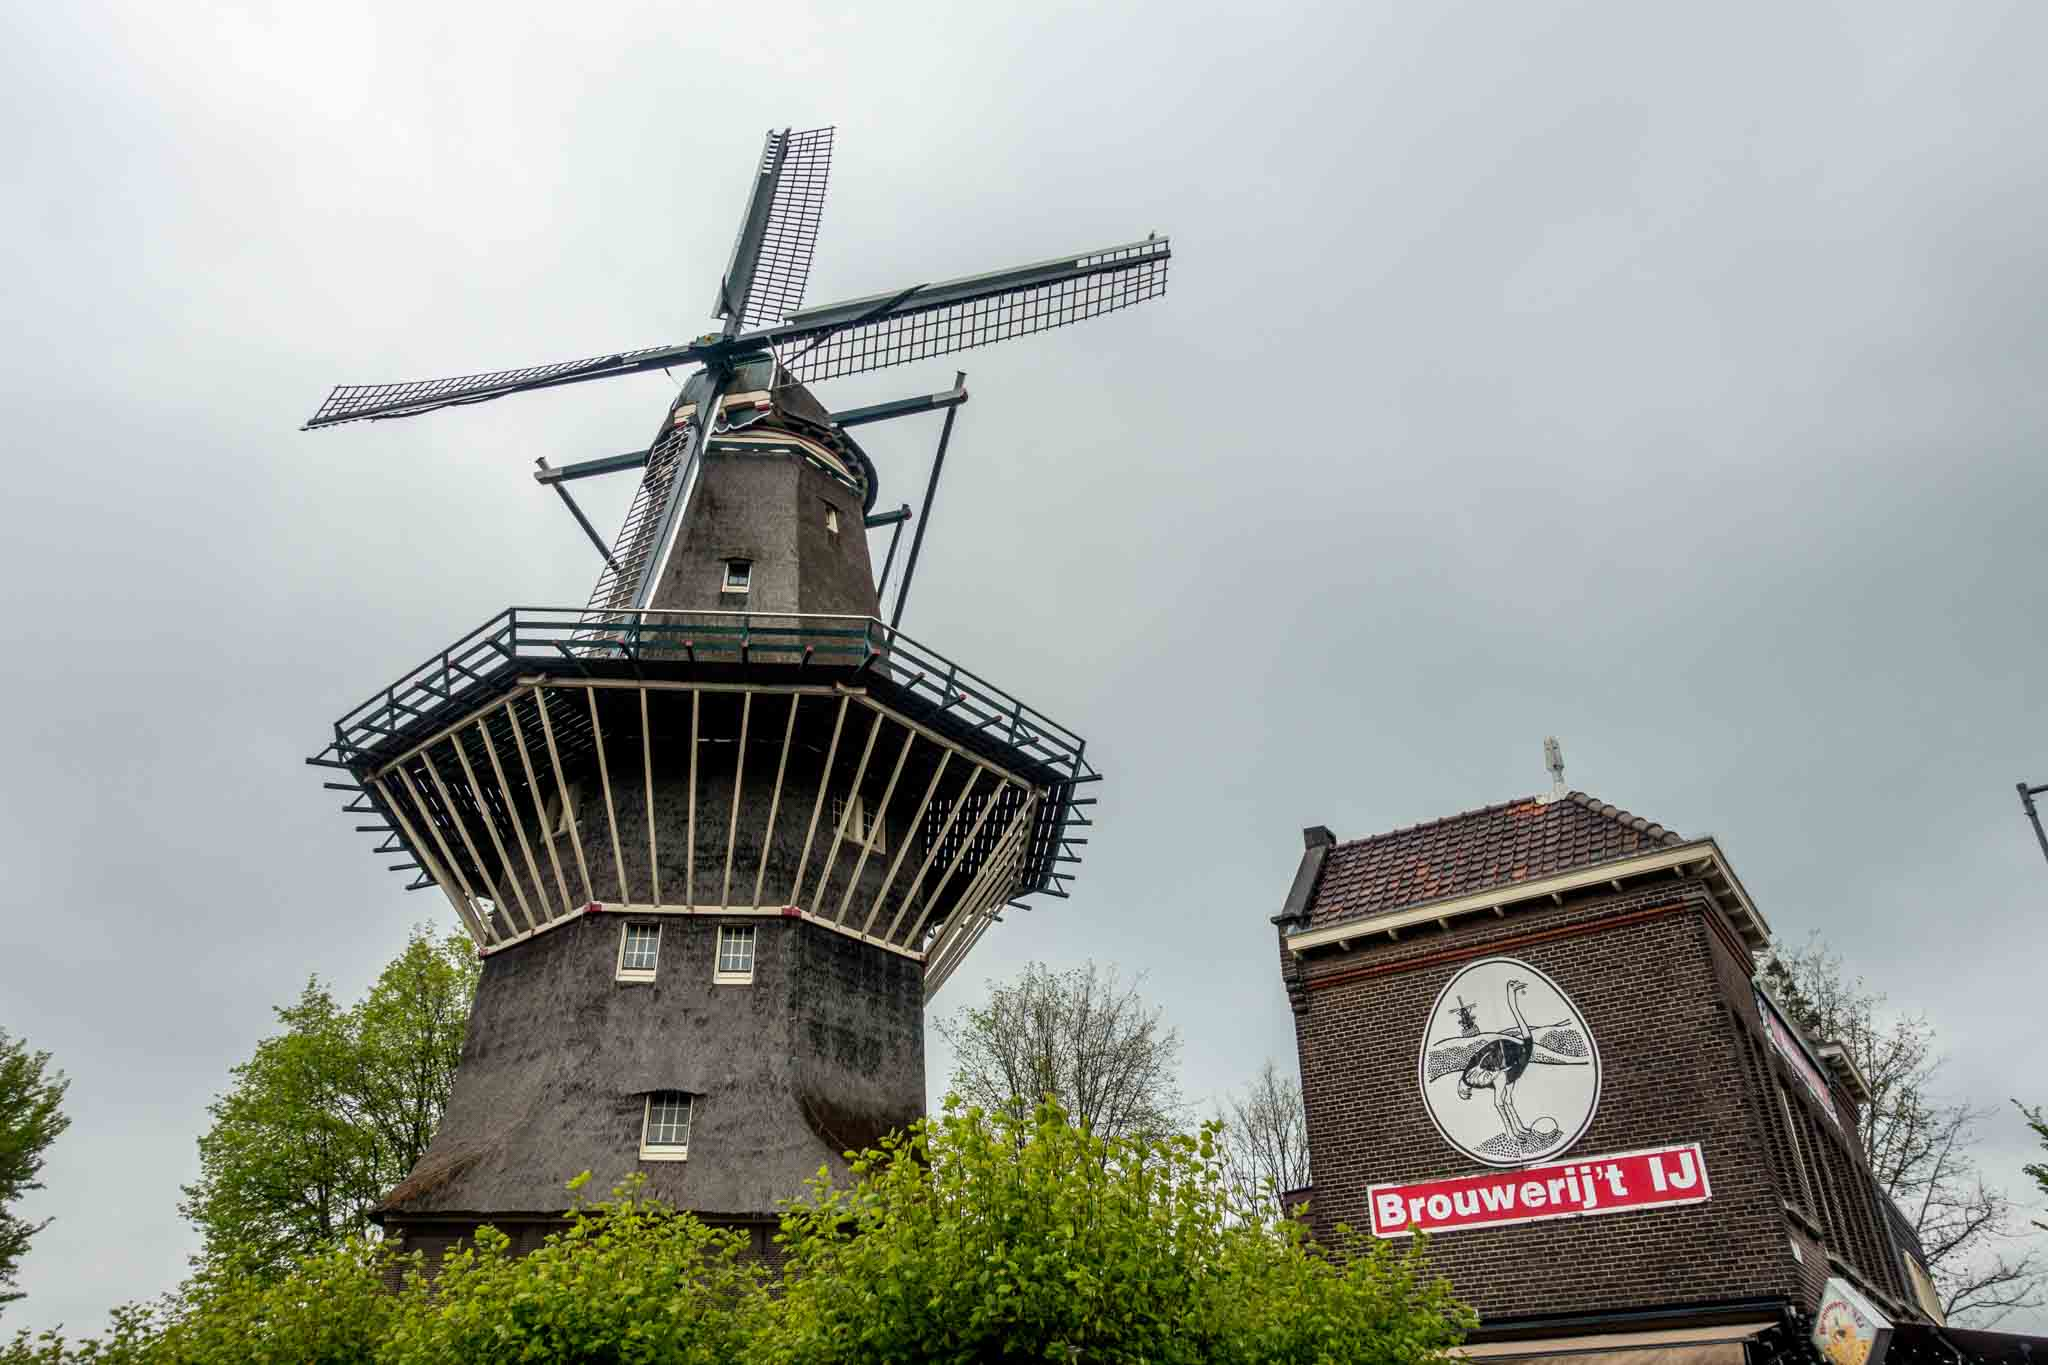 Brouwerij 't IJ, the windmill brewery, is one of the must visit places in Amsterdam for lovers of Belgian-style beers